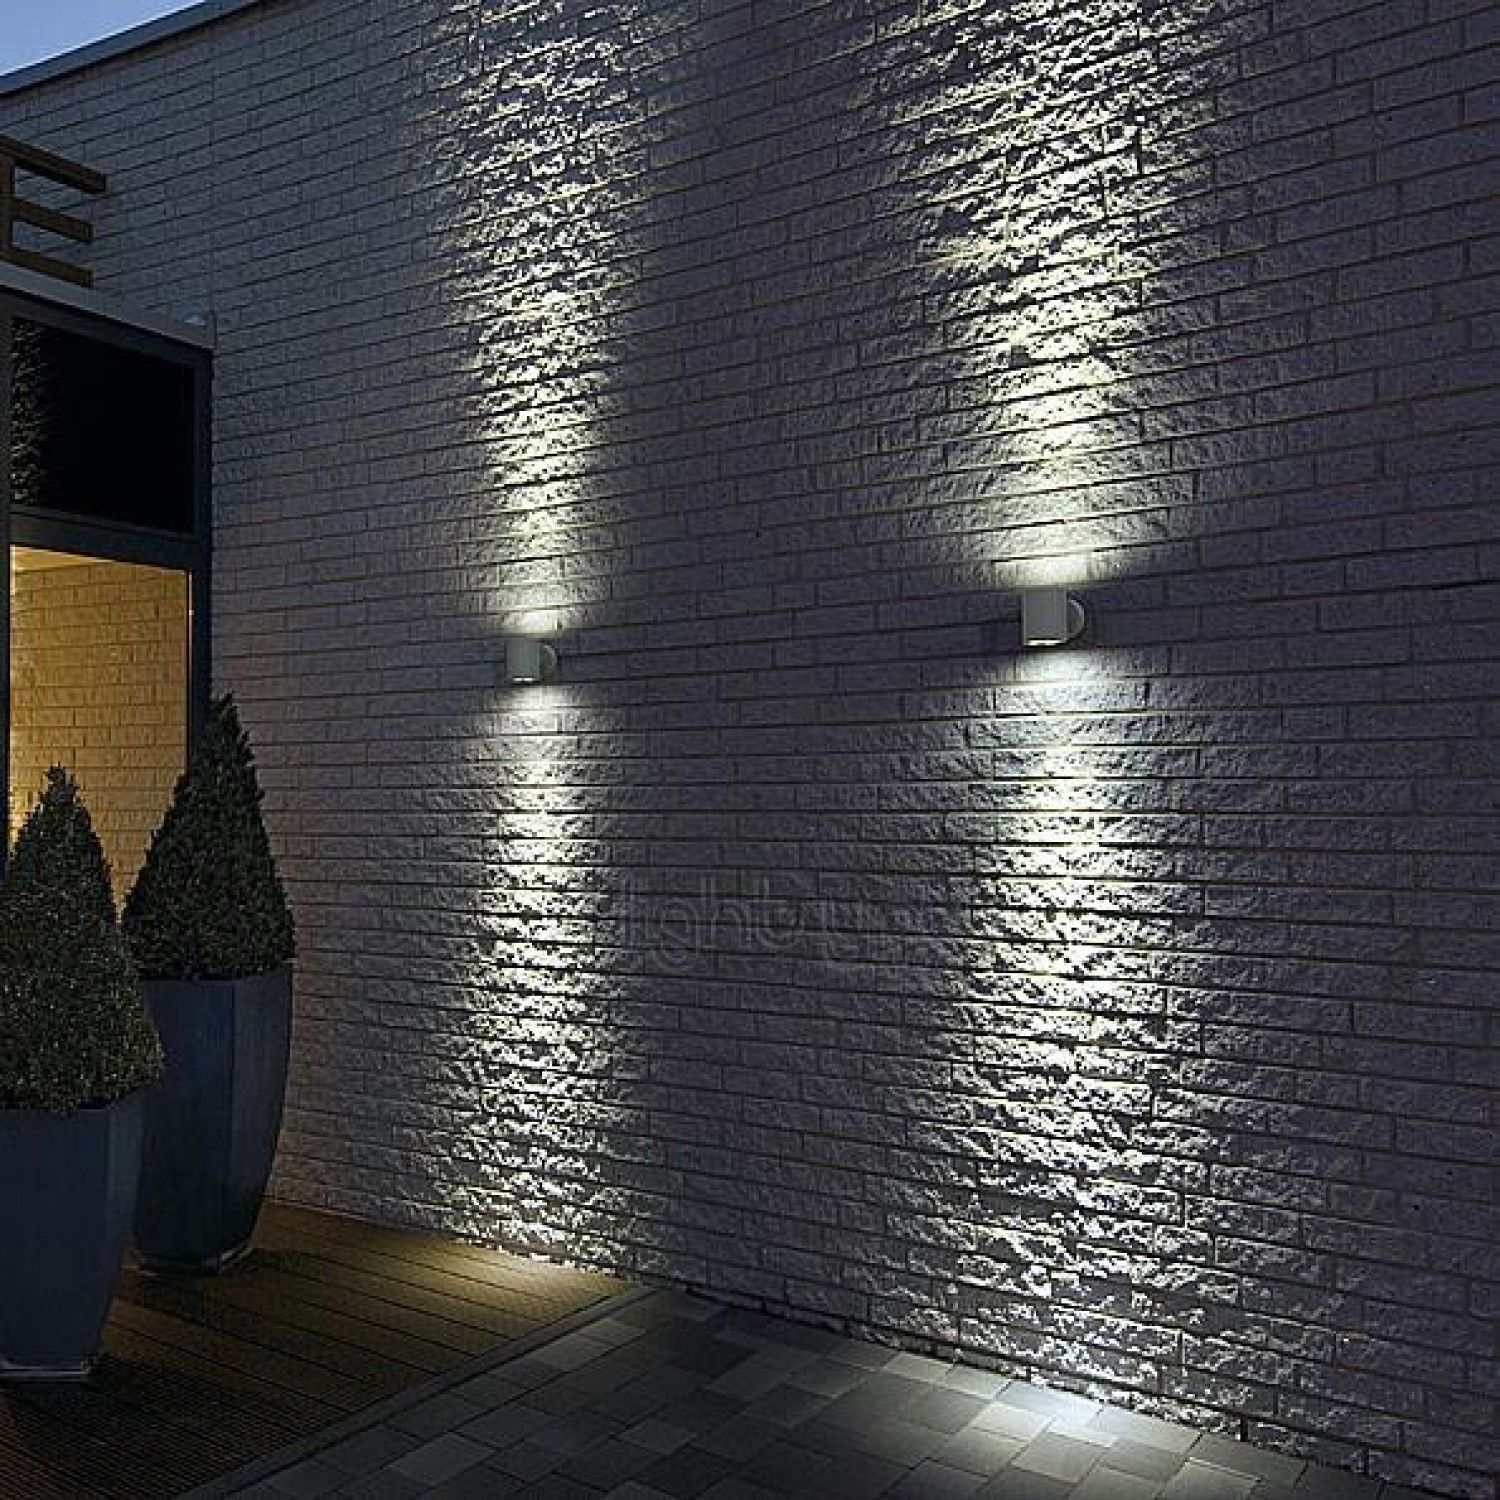 Eclairage Exterieur Facade Sitra Applique Exterieur Lampe Exterieur Lighting Outdoor